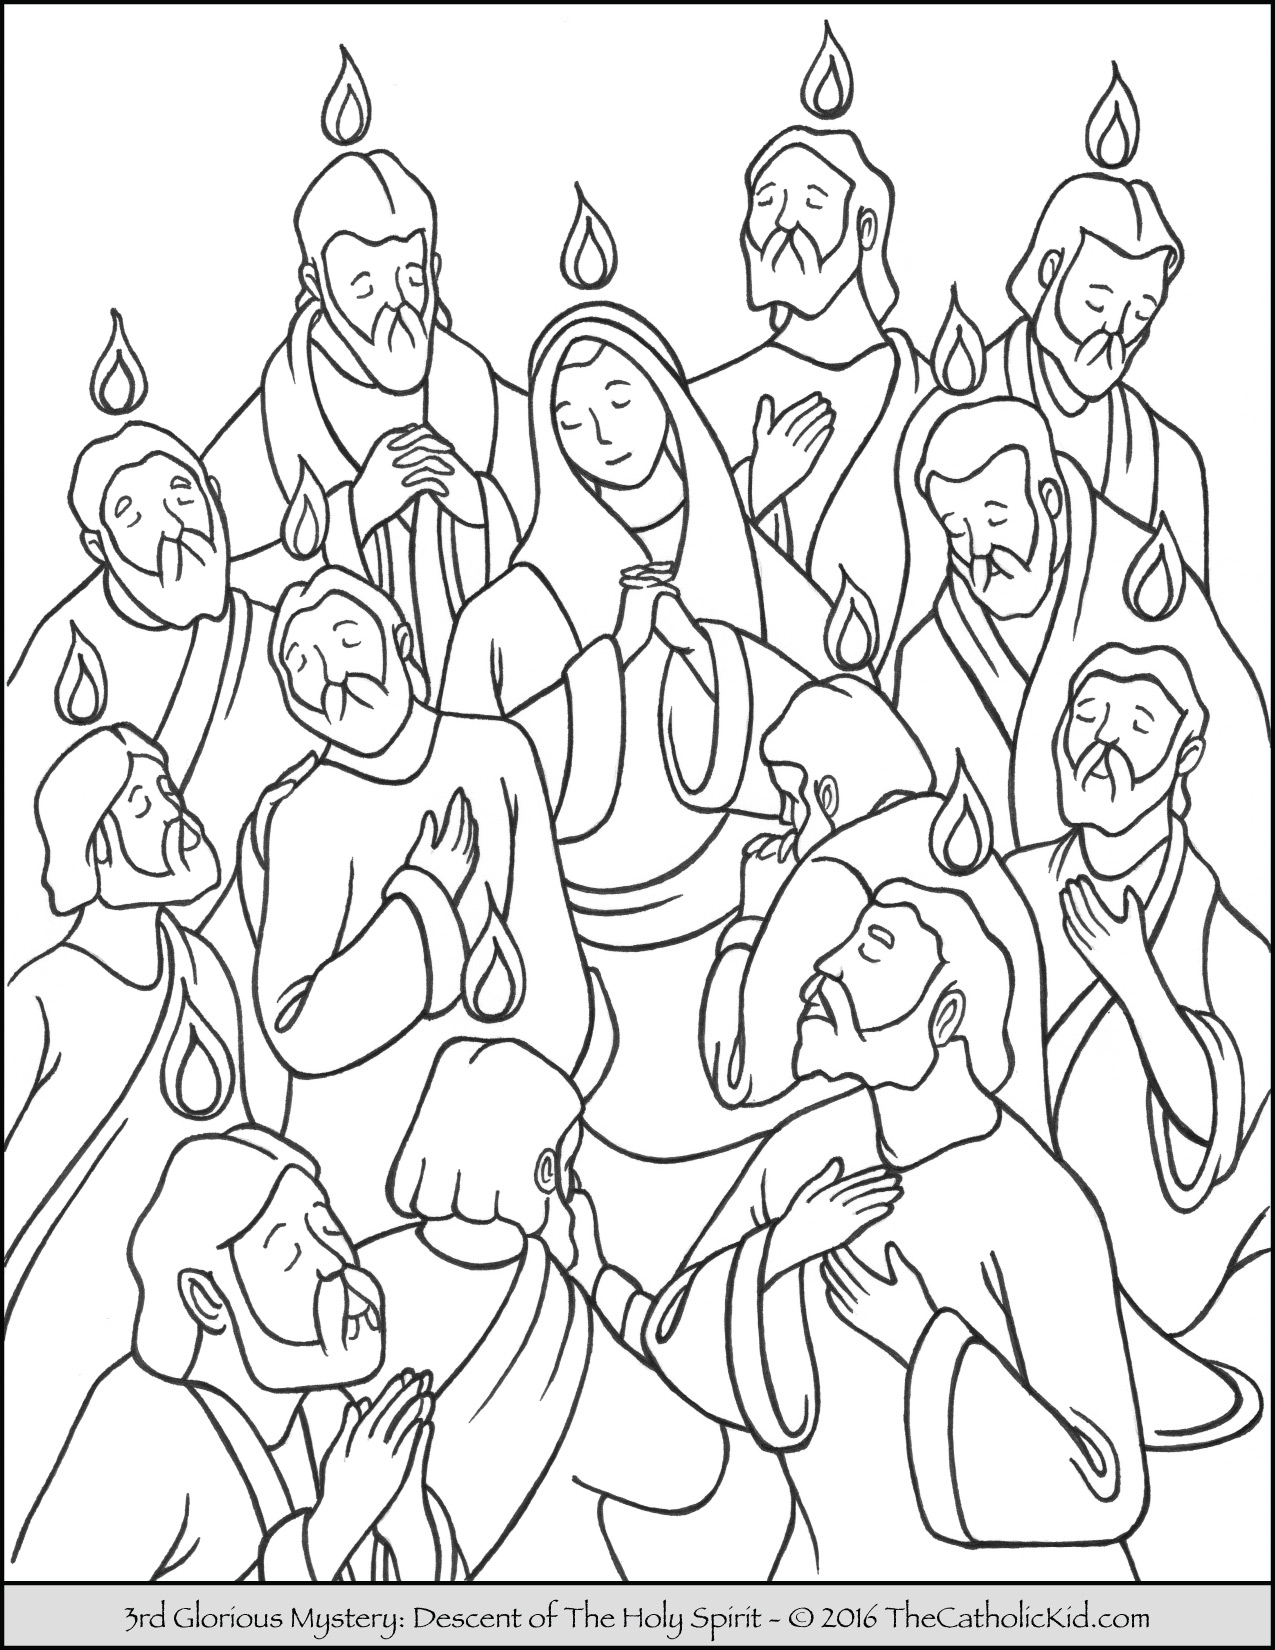 day of pentecost coloring pages day of pentecost coloring pages at getdrawings free download pages of coloring day pentecost